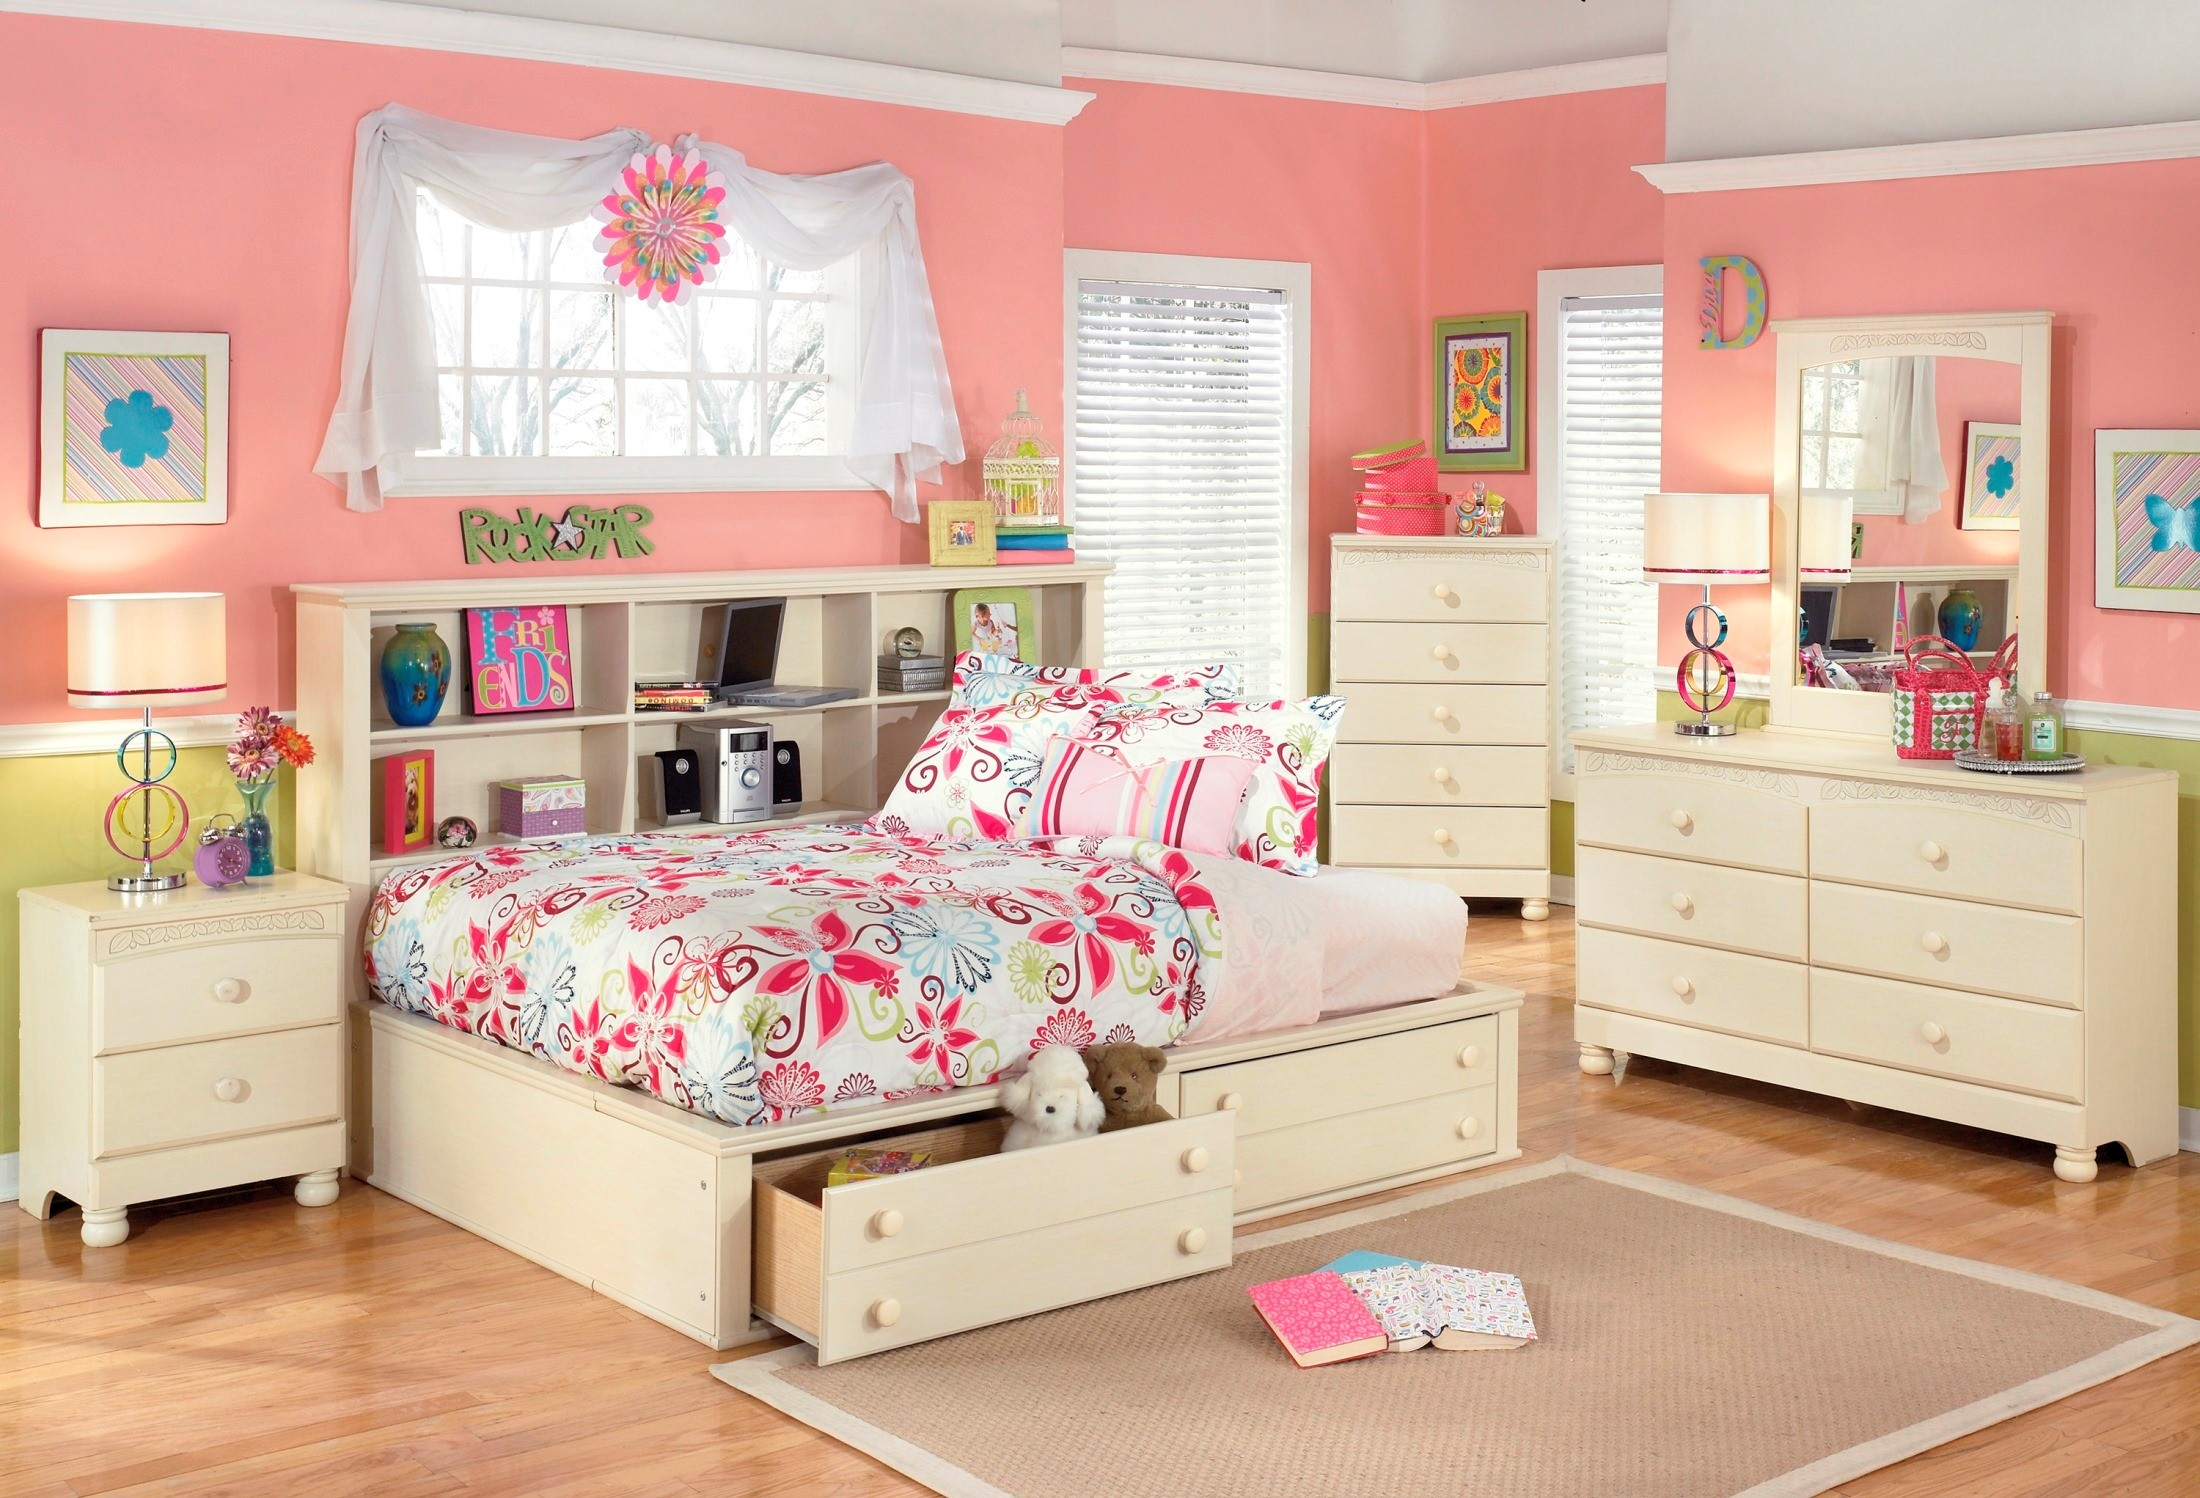 Cottage retreat youth bedside storage bedroom set from ashley b213 05 85 90 coleman furniture Cottage retreat collection bedroom furniture